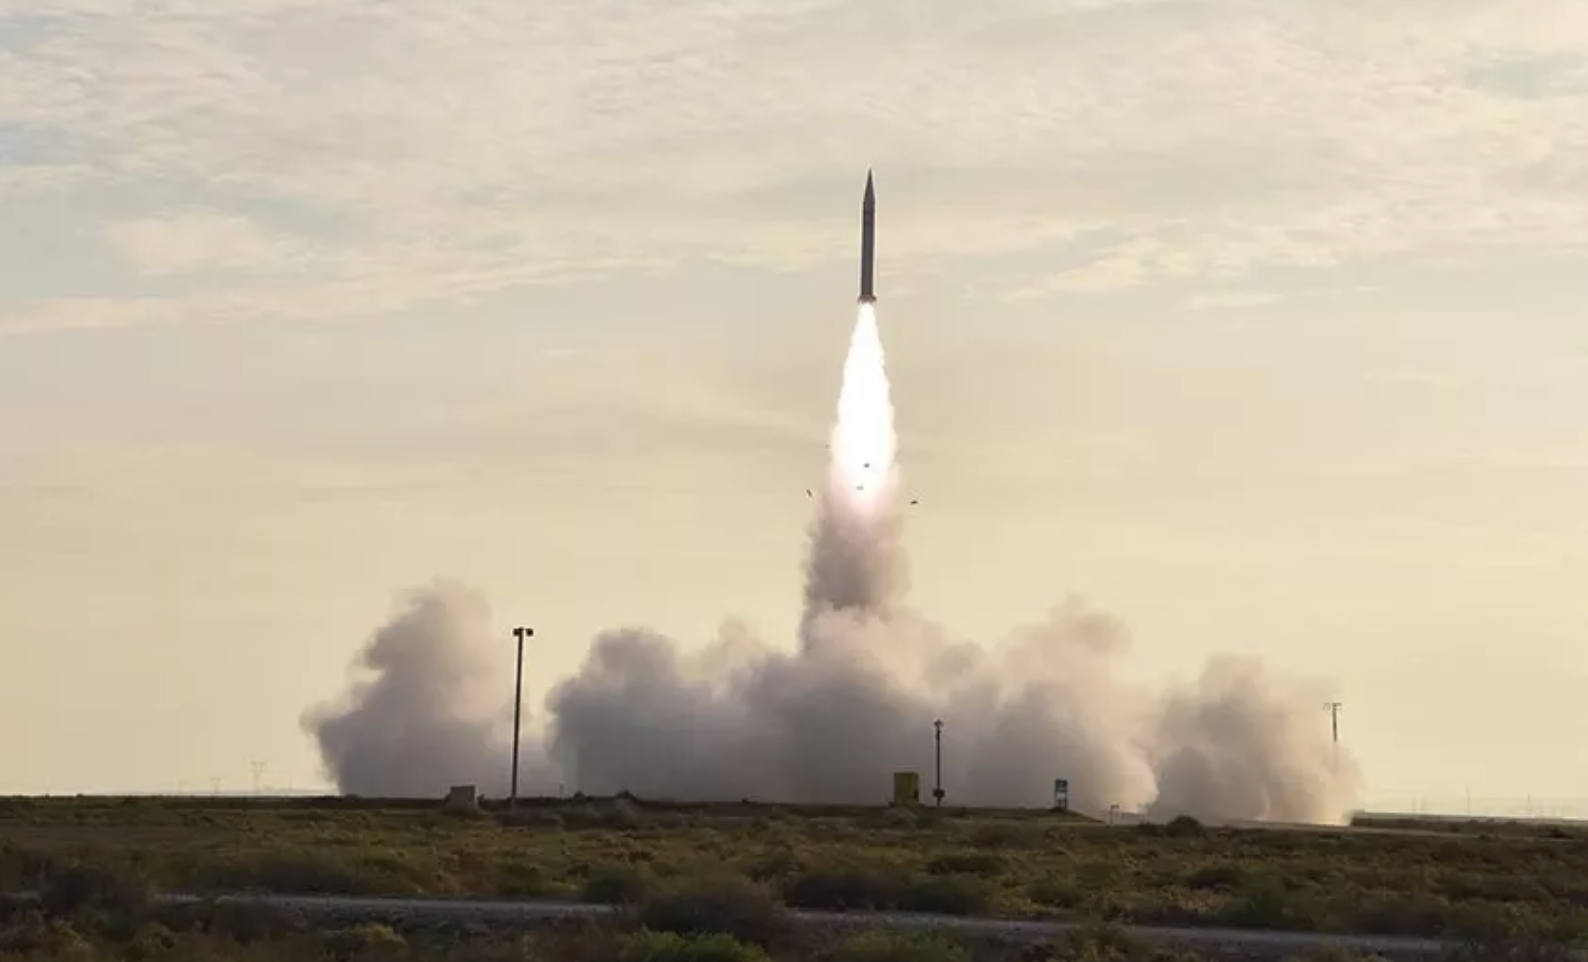 China Tests Hypersonic Aircraft Capable Of Penetrating U.S. Missile Defence Systems